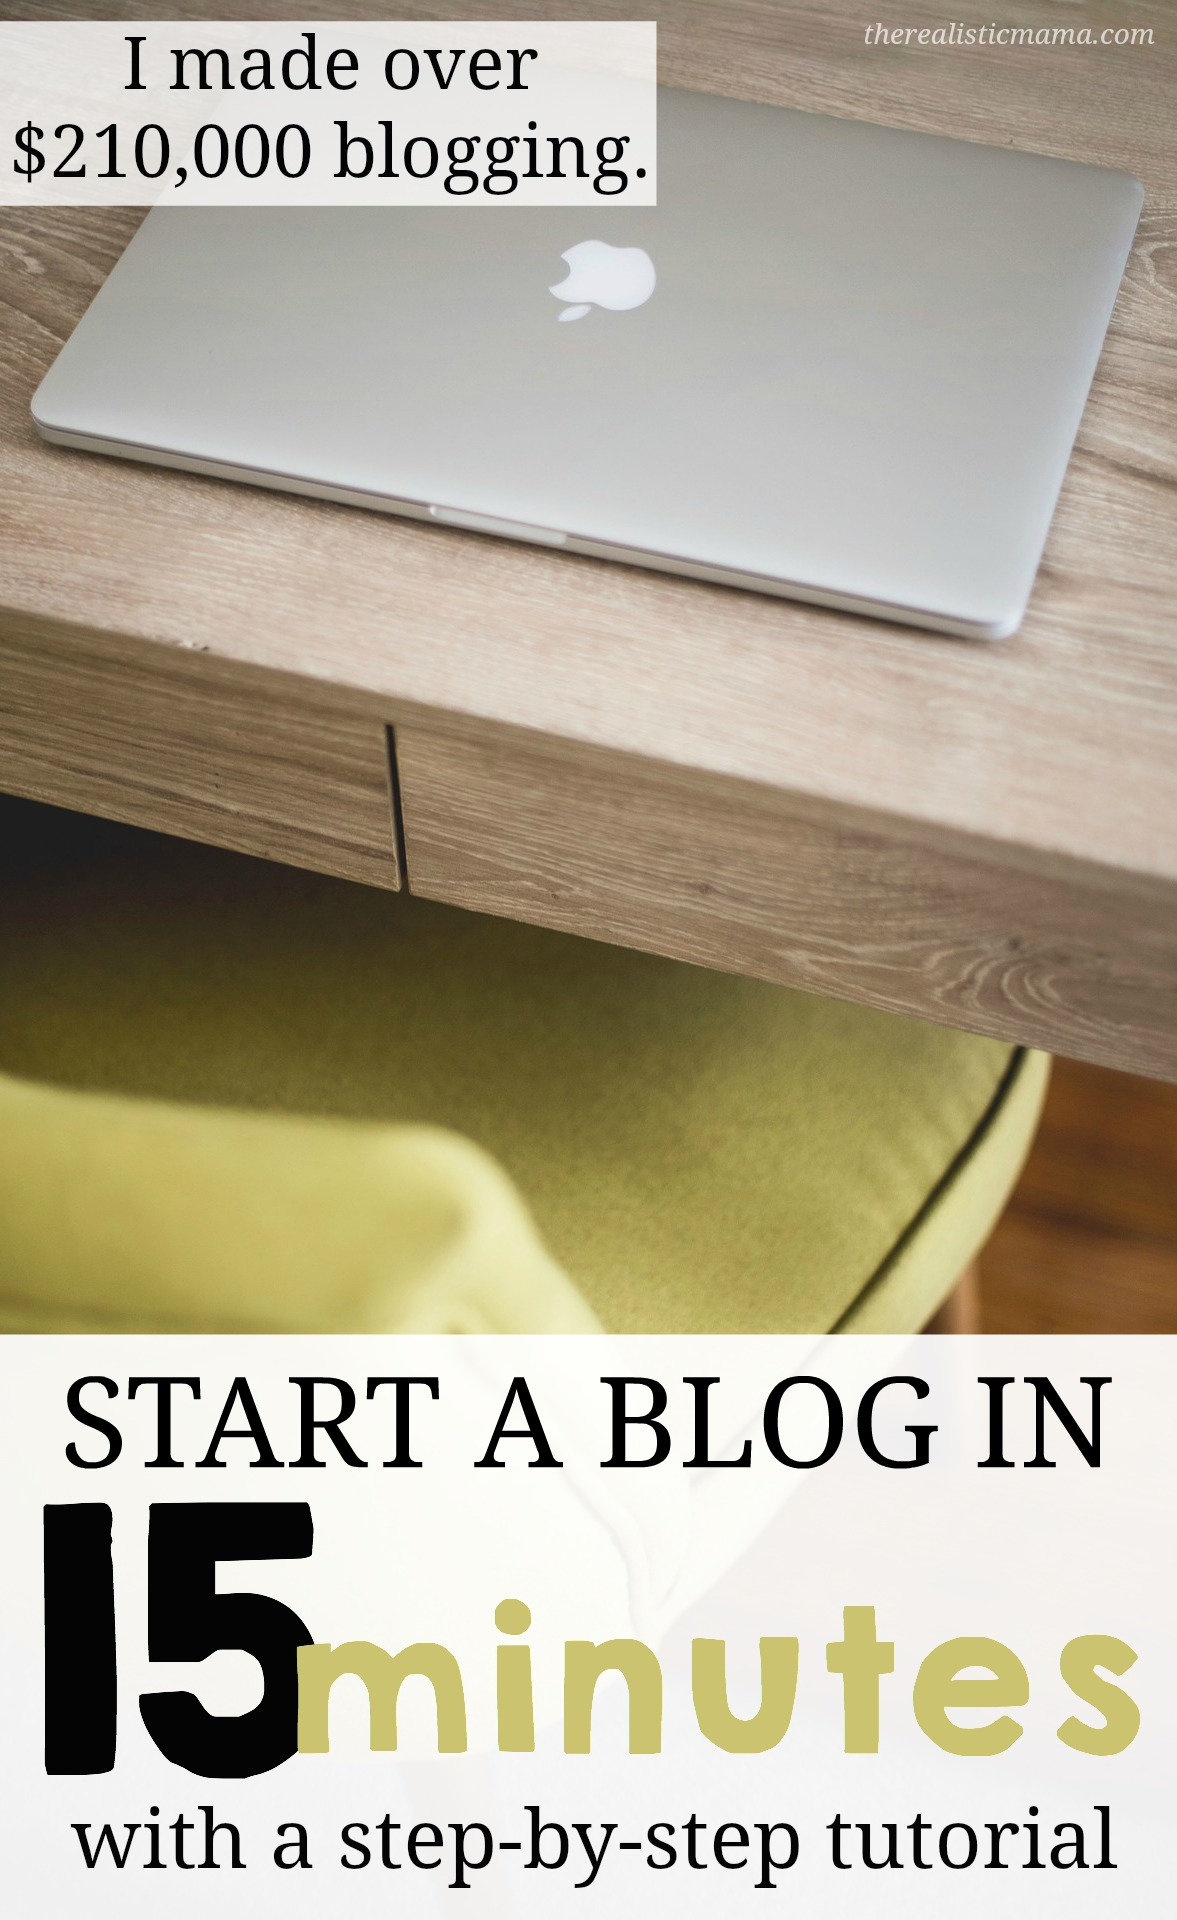 I made over $210,000 (and growing) blogging. How to start a blog in 15 minutes with a step-by-step tutorial. Start a WordPress Blog on Bluehost today.